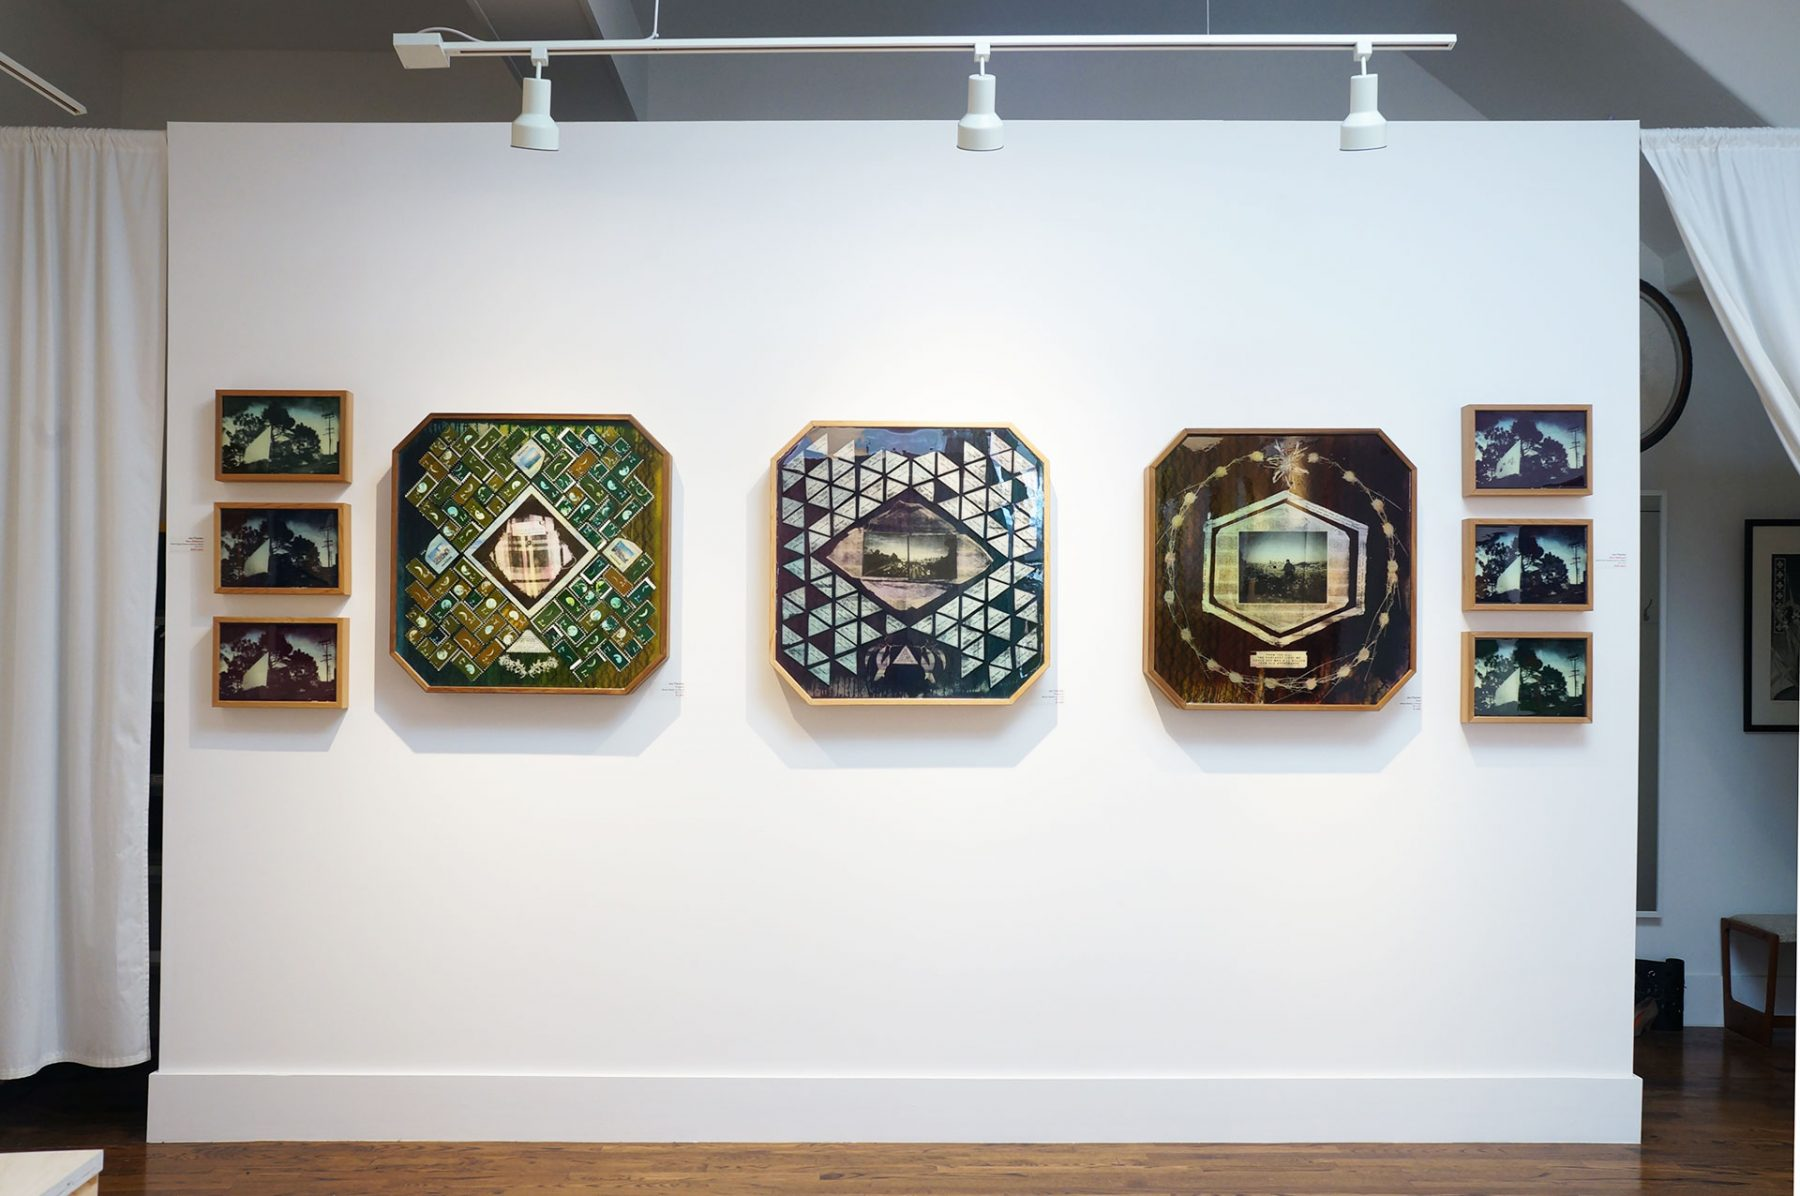 Tricky Triangle installed at Secession Art + Design (March 2015)